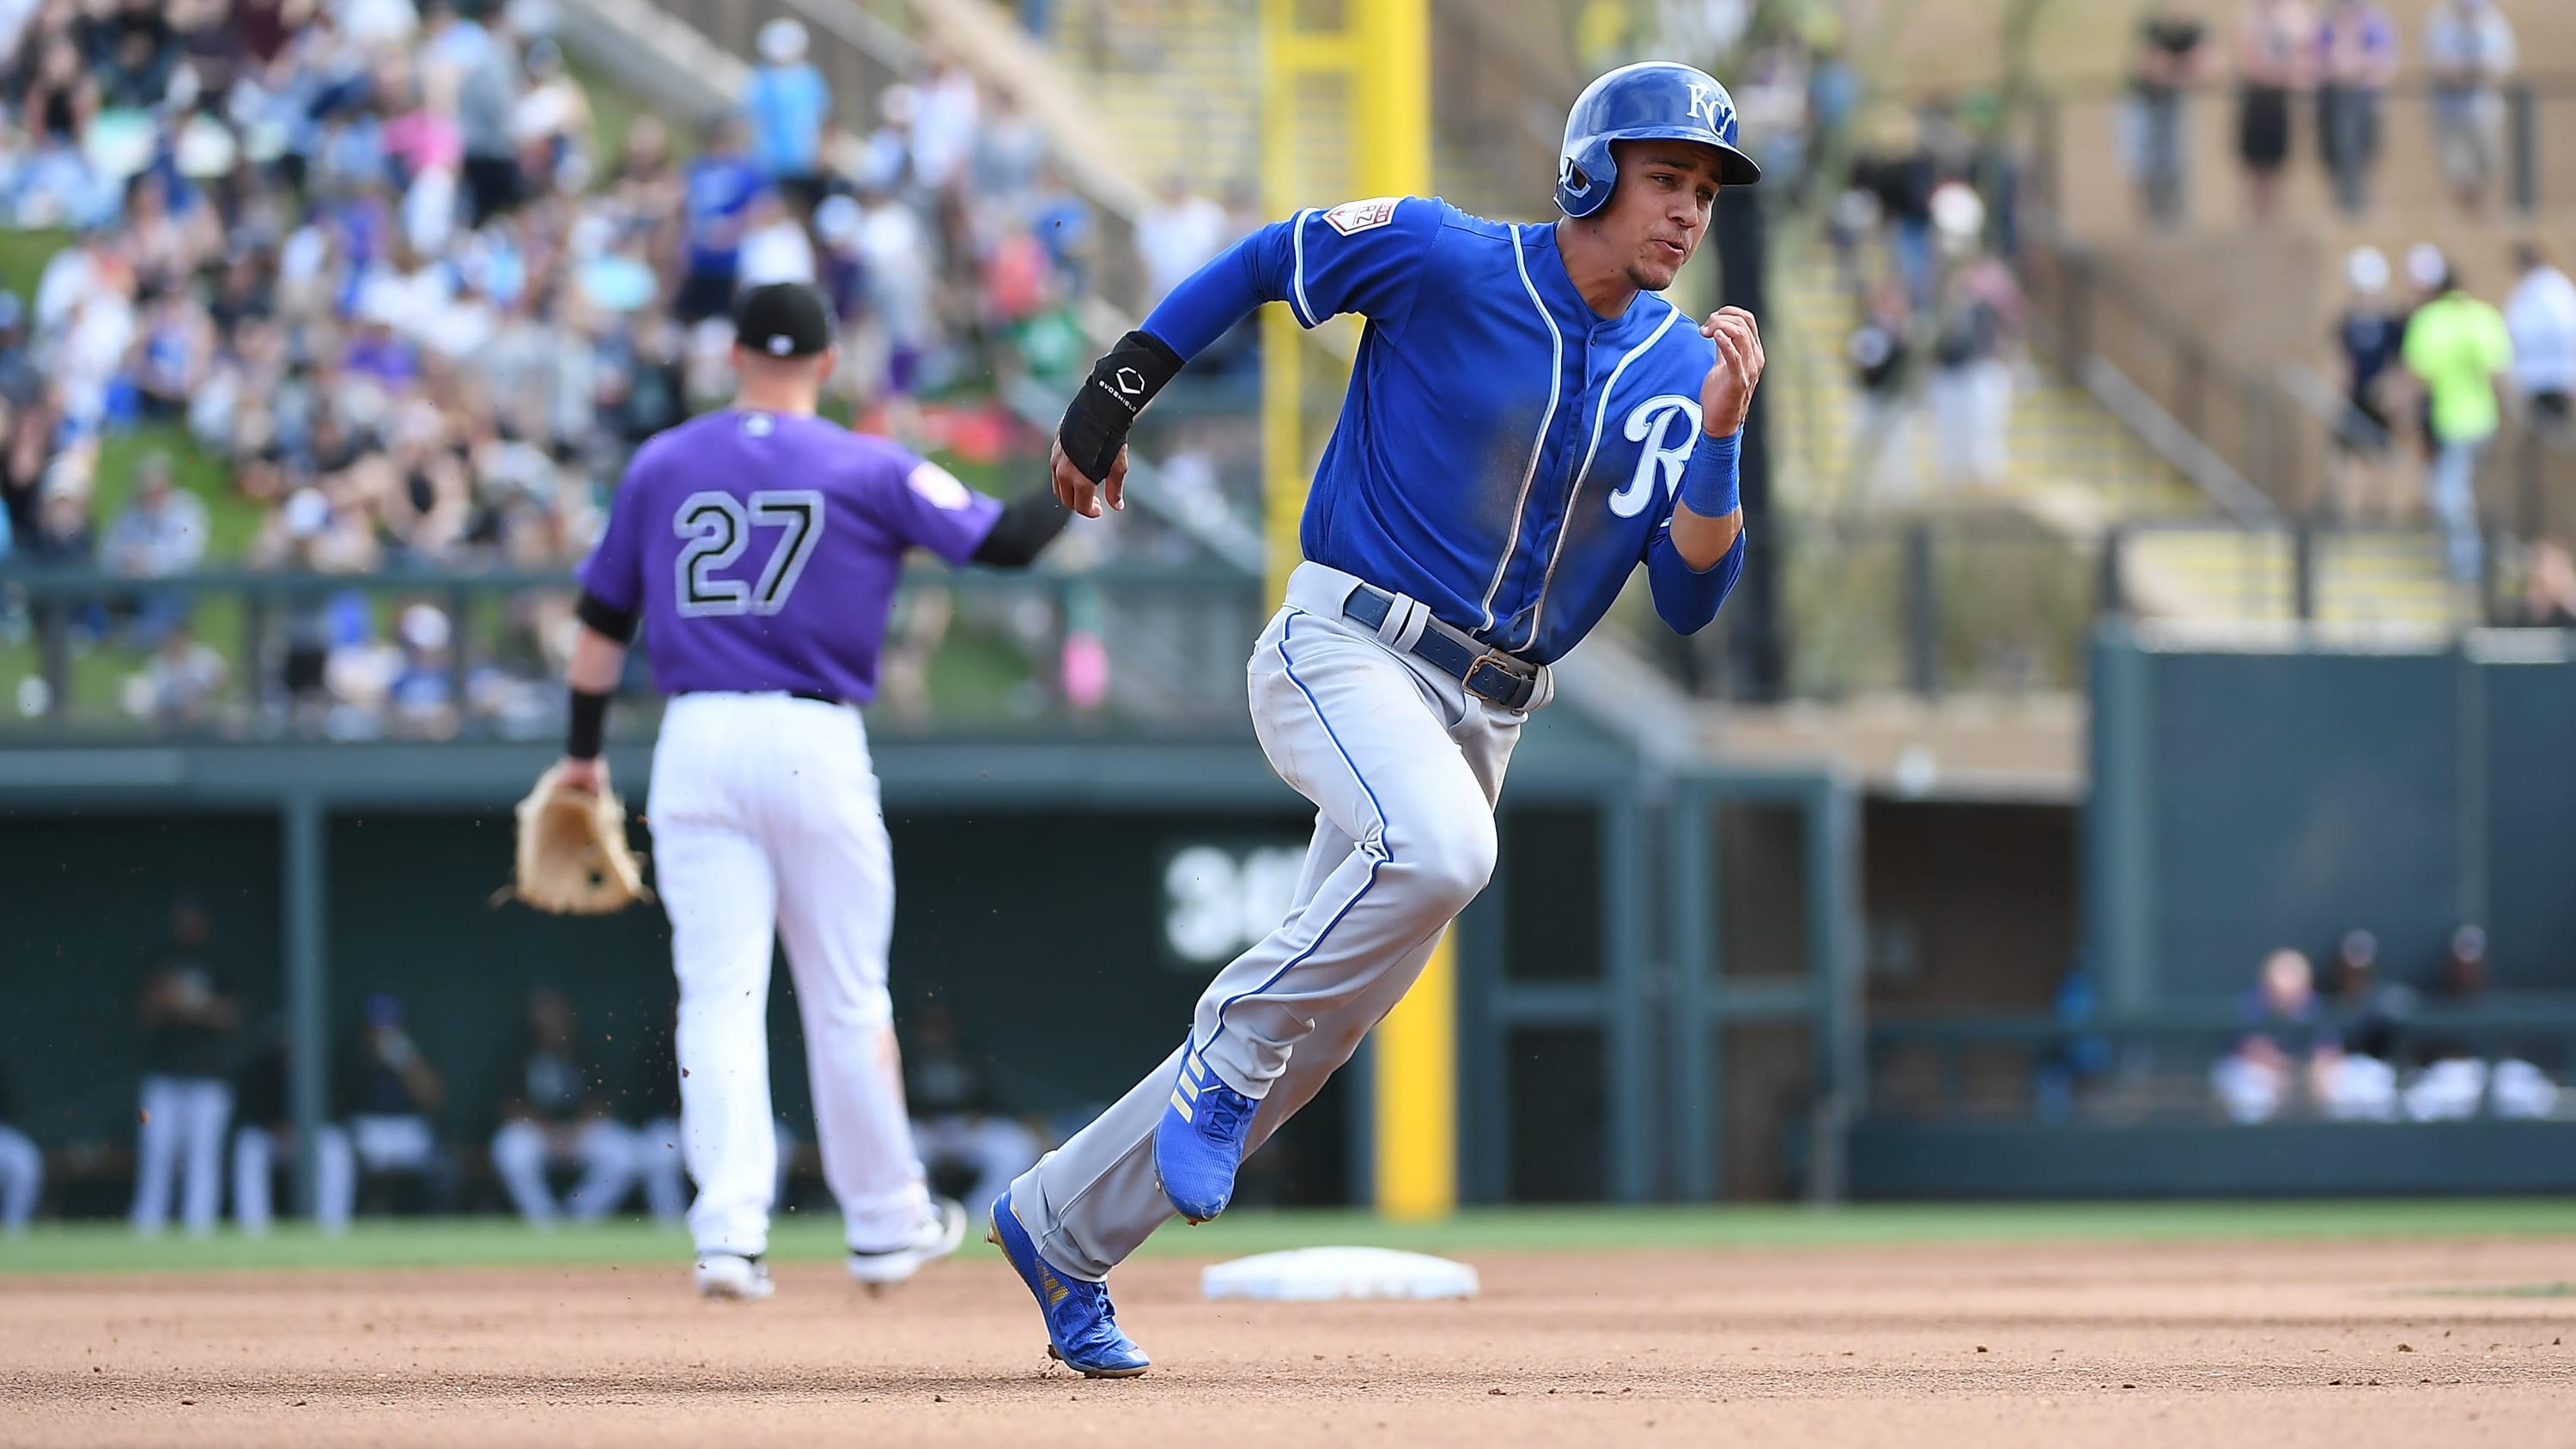 SCOTTSDALE, AZ - MARCH 15:  Nicky Lopez #9 of the Kansas City Royals advances to third base on a double by Chris Owings #2 during the fourth inning of a spring training game against the Colorado Rockies at Salt River Fields at Talking Stick on March 15, 2019 in Scottsdale, Arizona.  (Photo by Norm Hall/Getty Images)